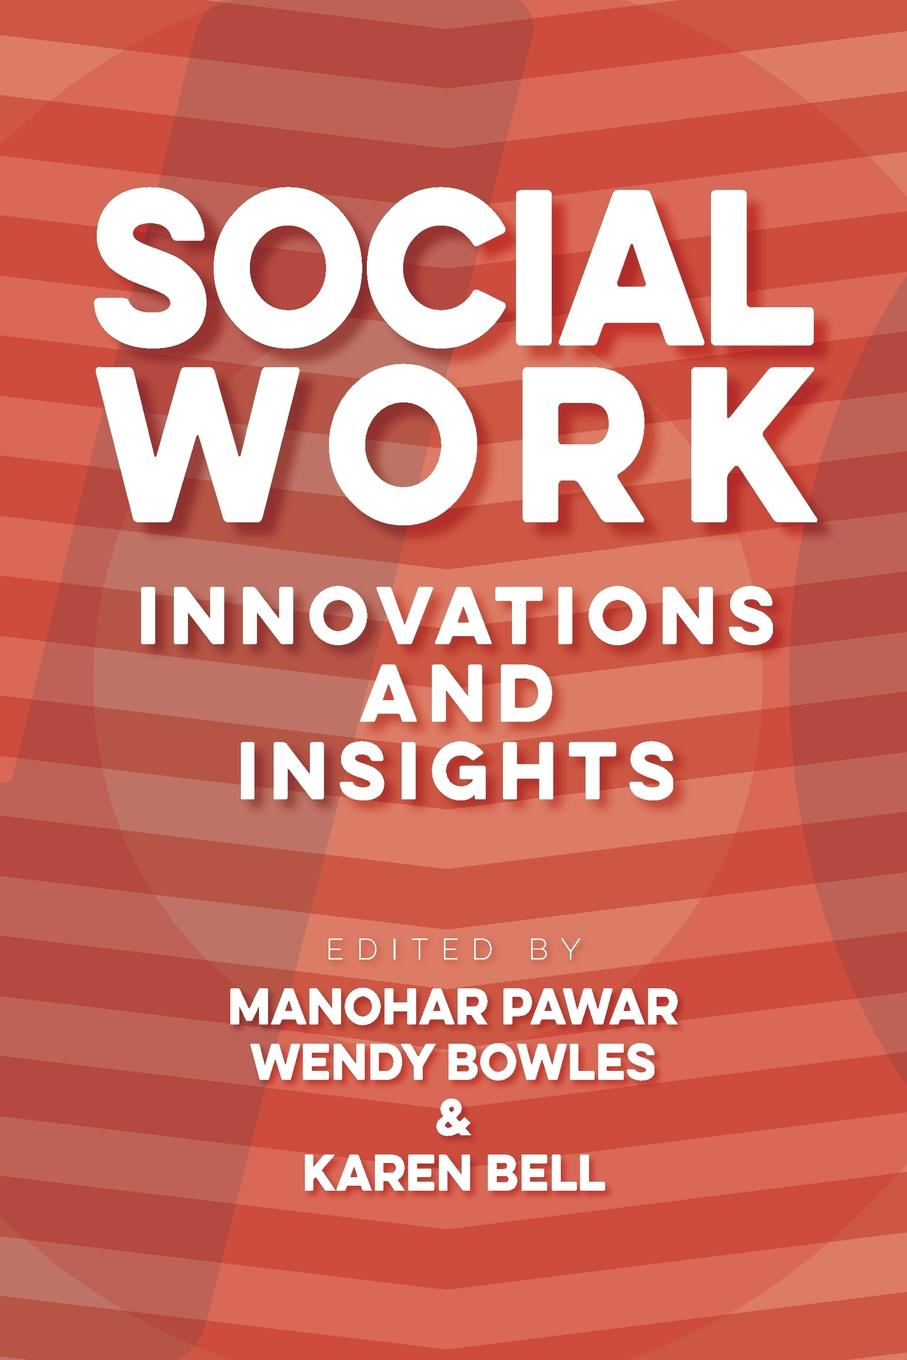 Social Work. Innovations and Insights